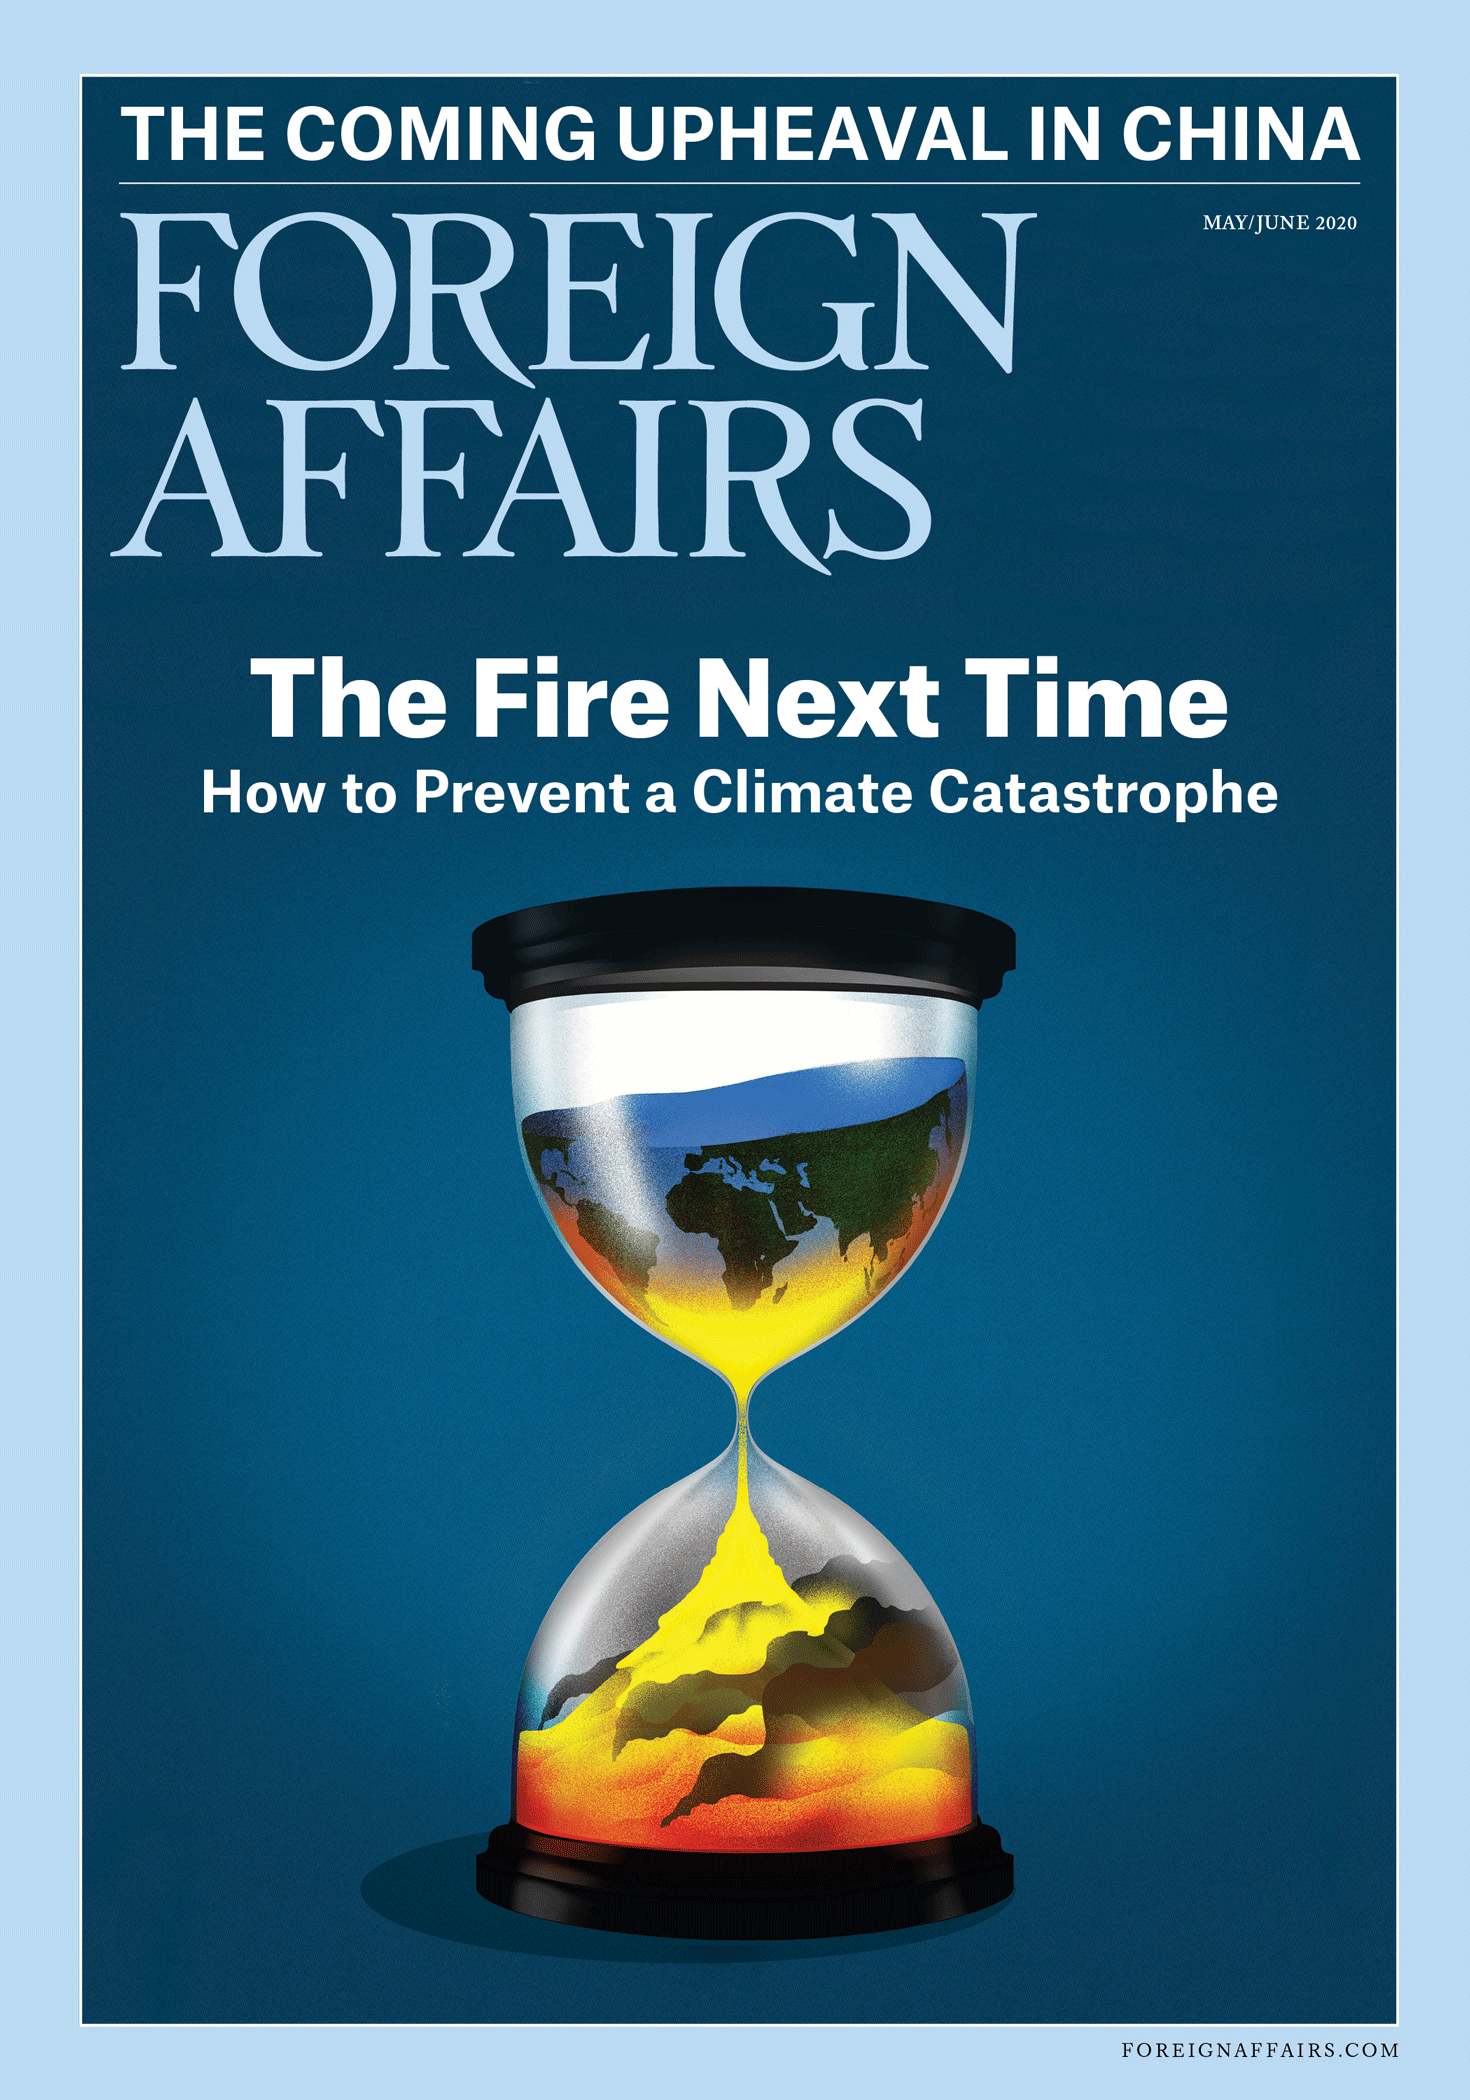 May/June 2020 Foreign Affairs cover: An hourglass with the earth falling through it